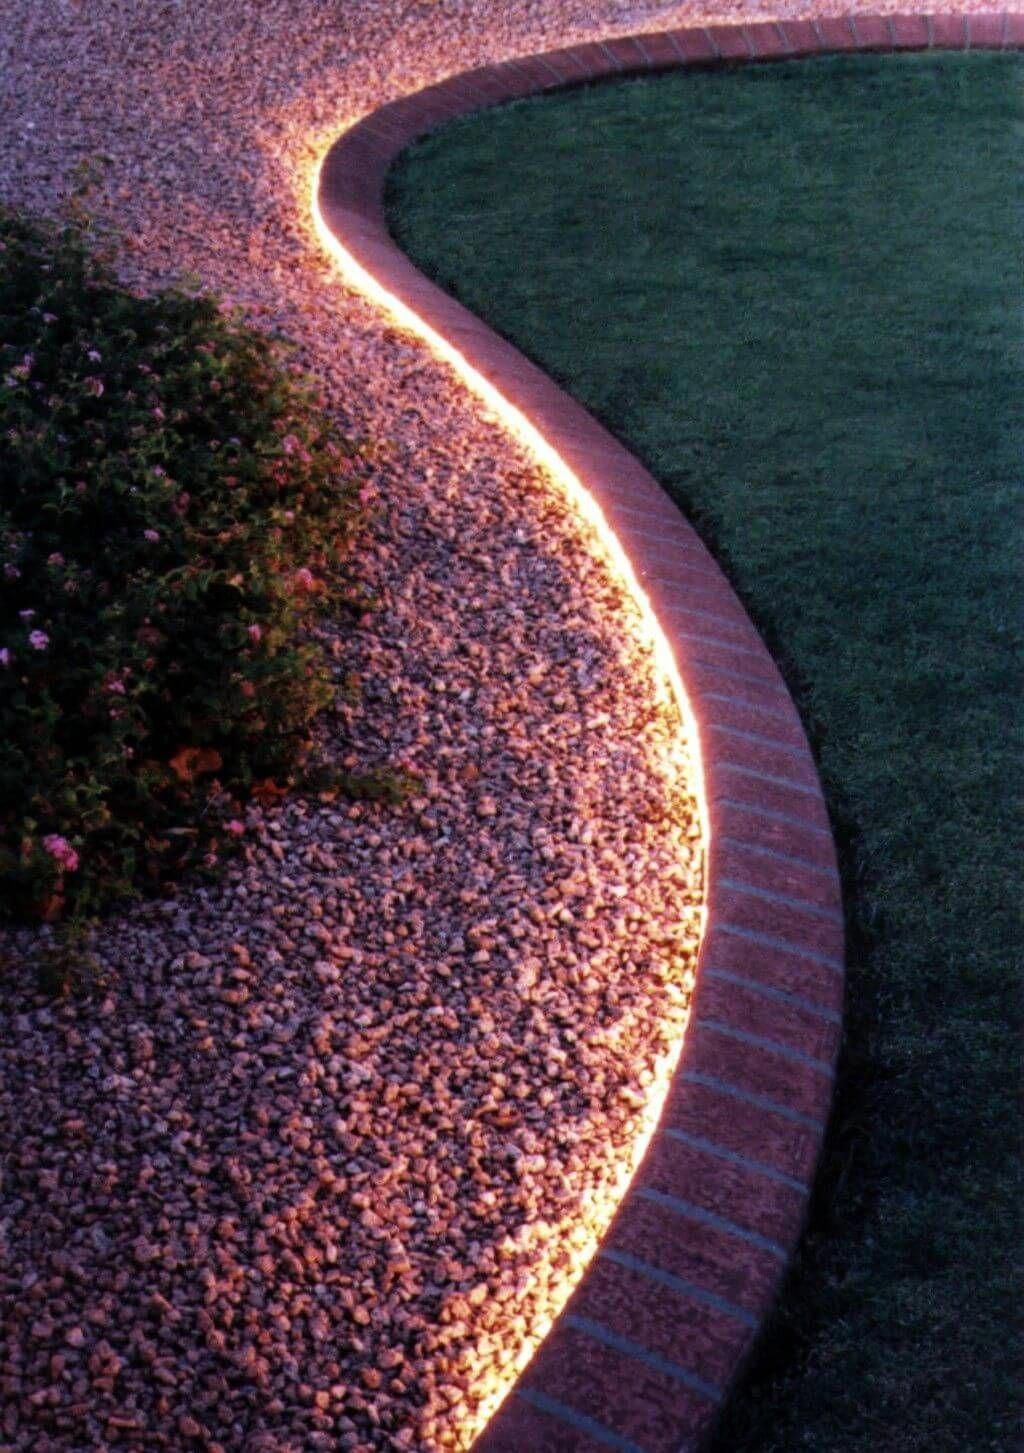 Front Yard Landscaping Ideas Landscaping Your Front Yard Is The Best Way To Increase Your Home S Cur In 2020 Lighting Your Garden Diy Outdoor Lighting Budget Backyard